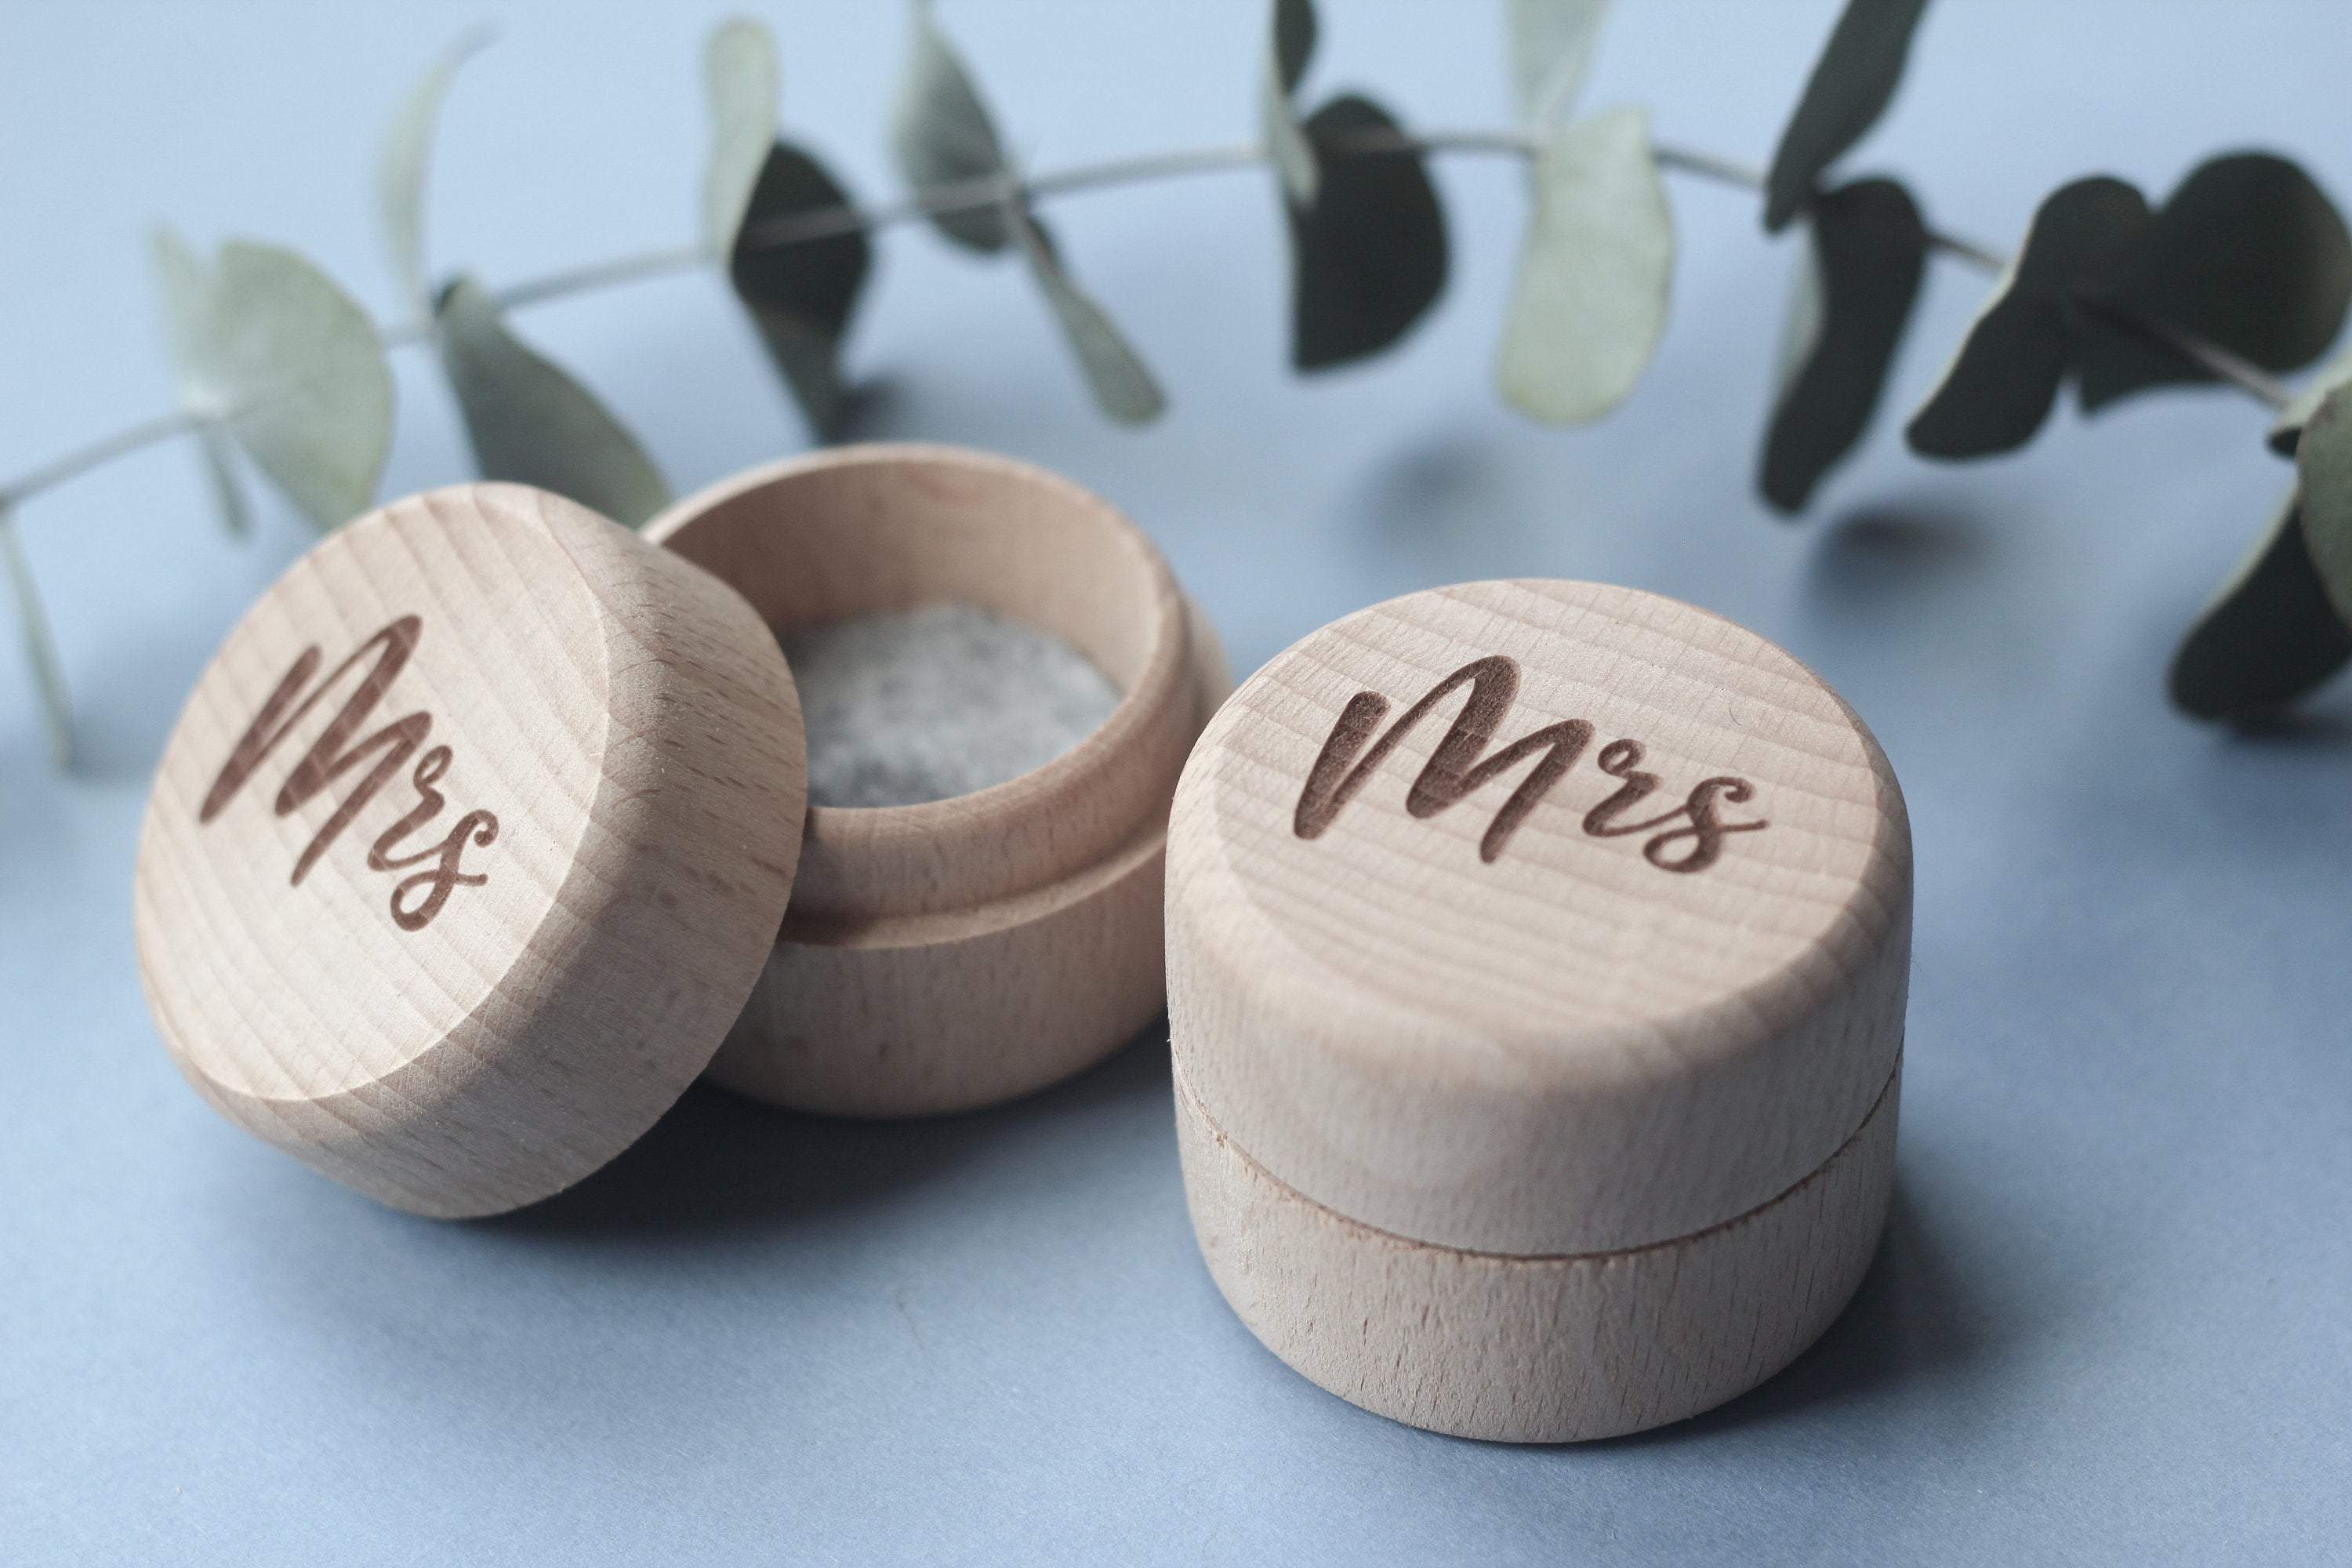 fira-site - Wooden Mr and Mrs Wedding Ring Box Set